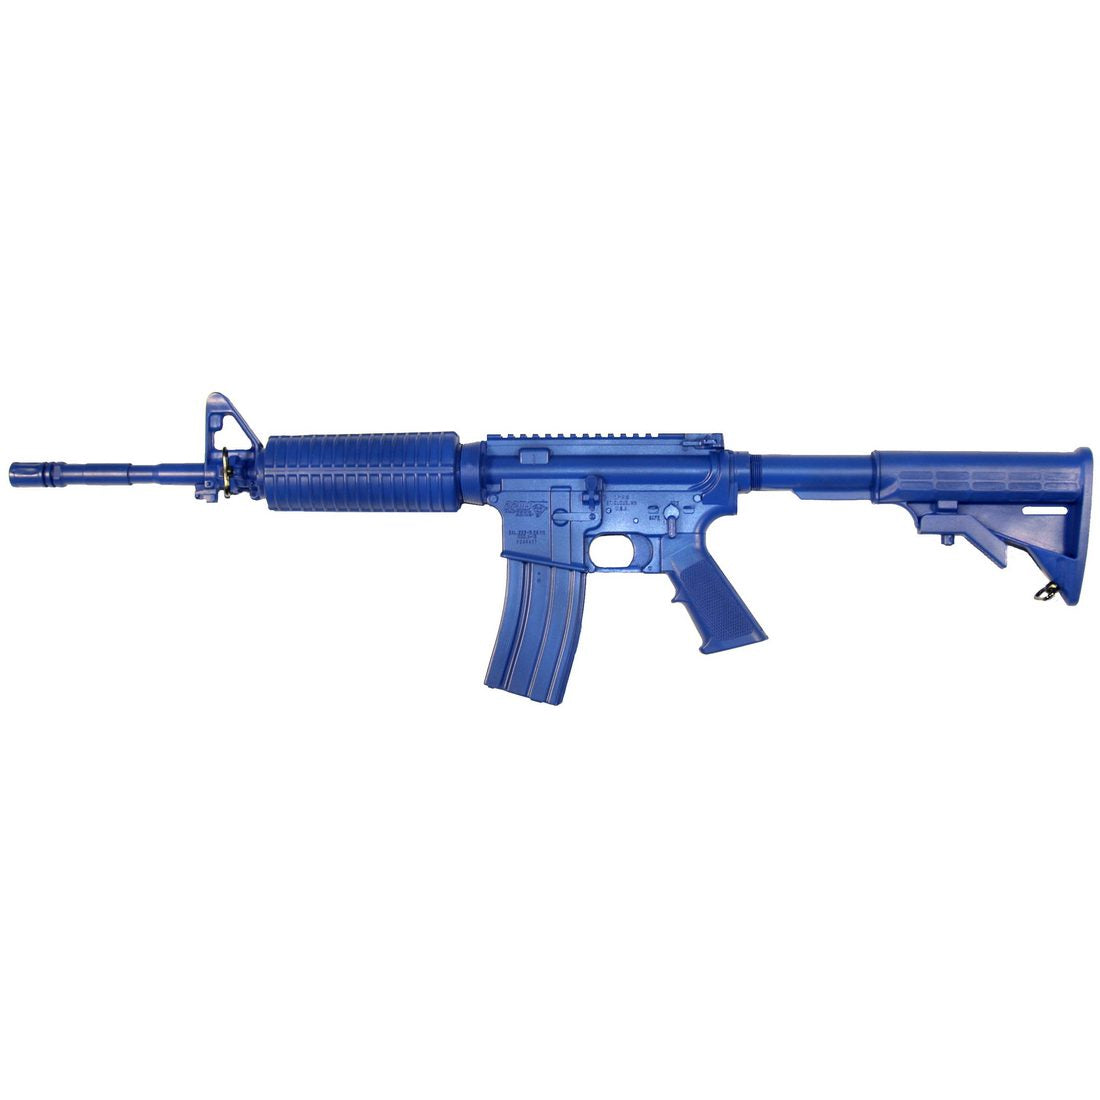 "Blueguns FSM4FT14 M4 Flat Top Open Stock, 14"" Barrel"